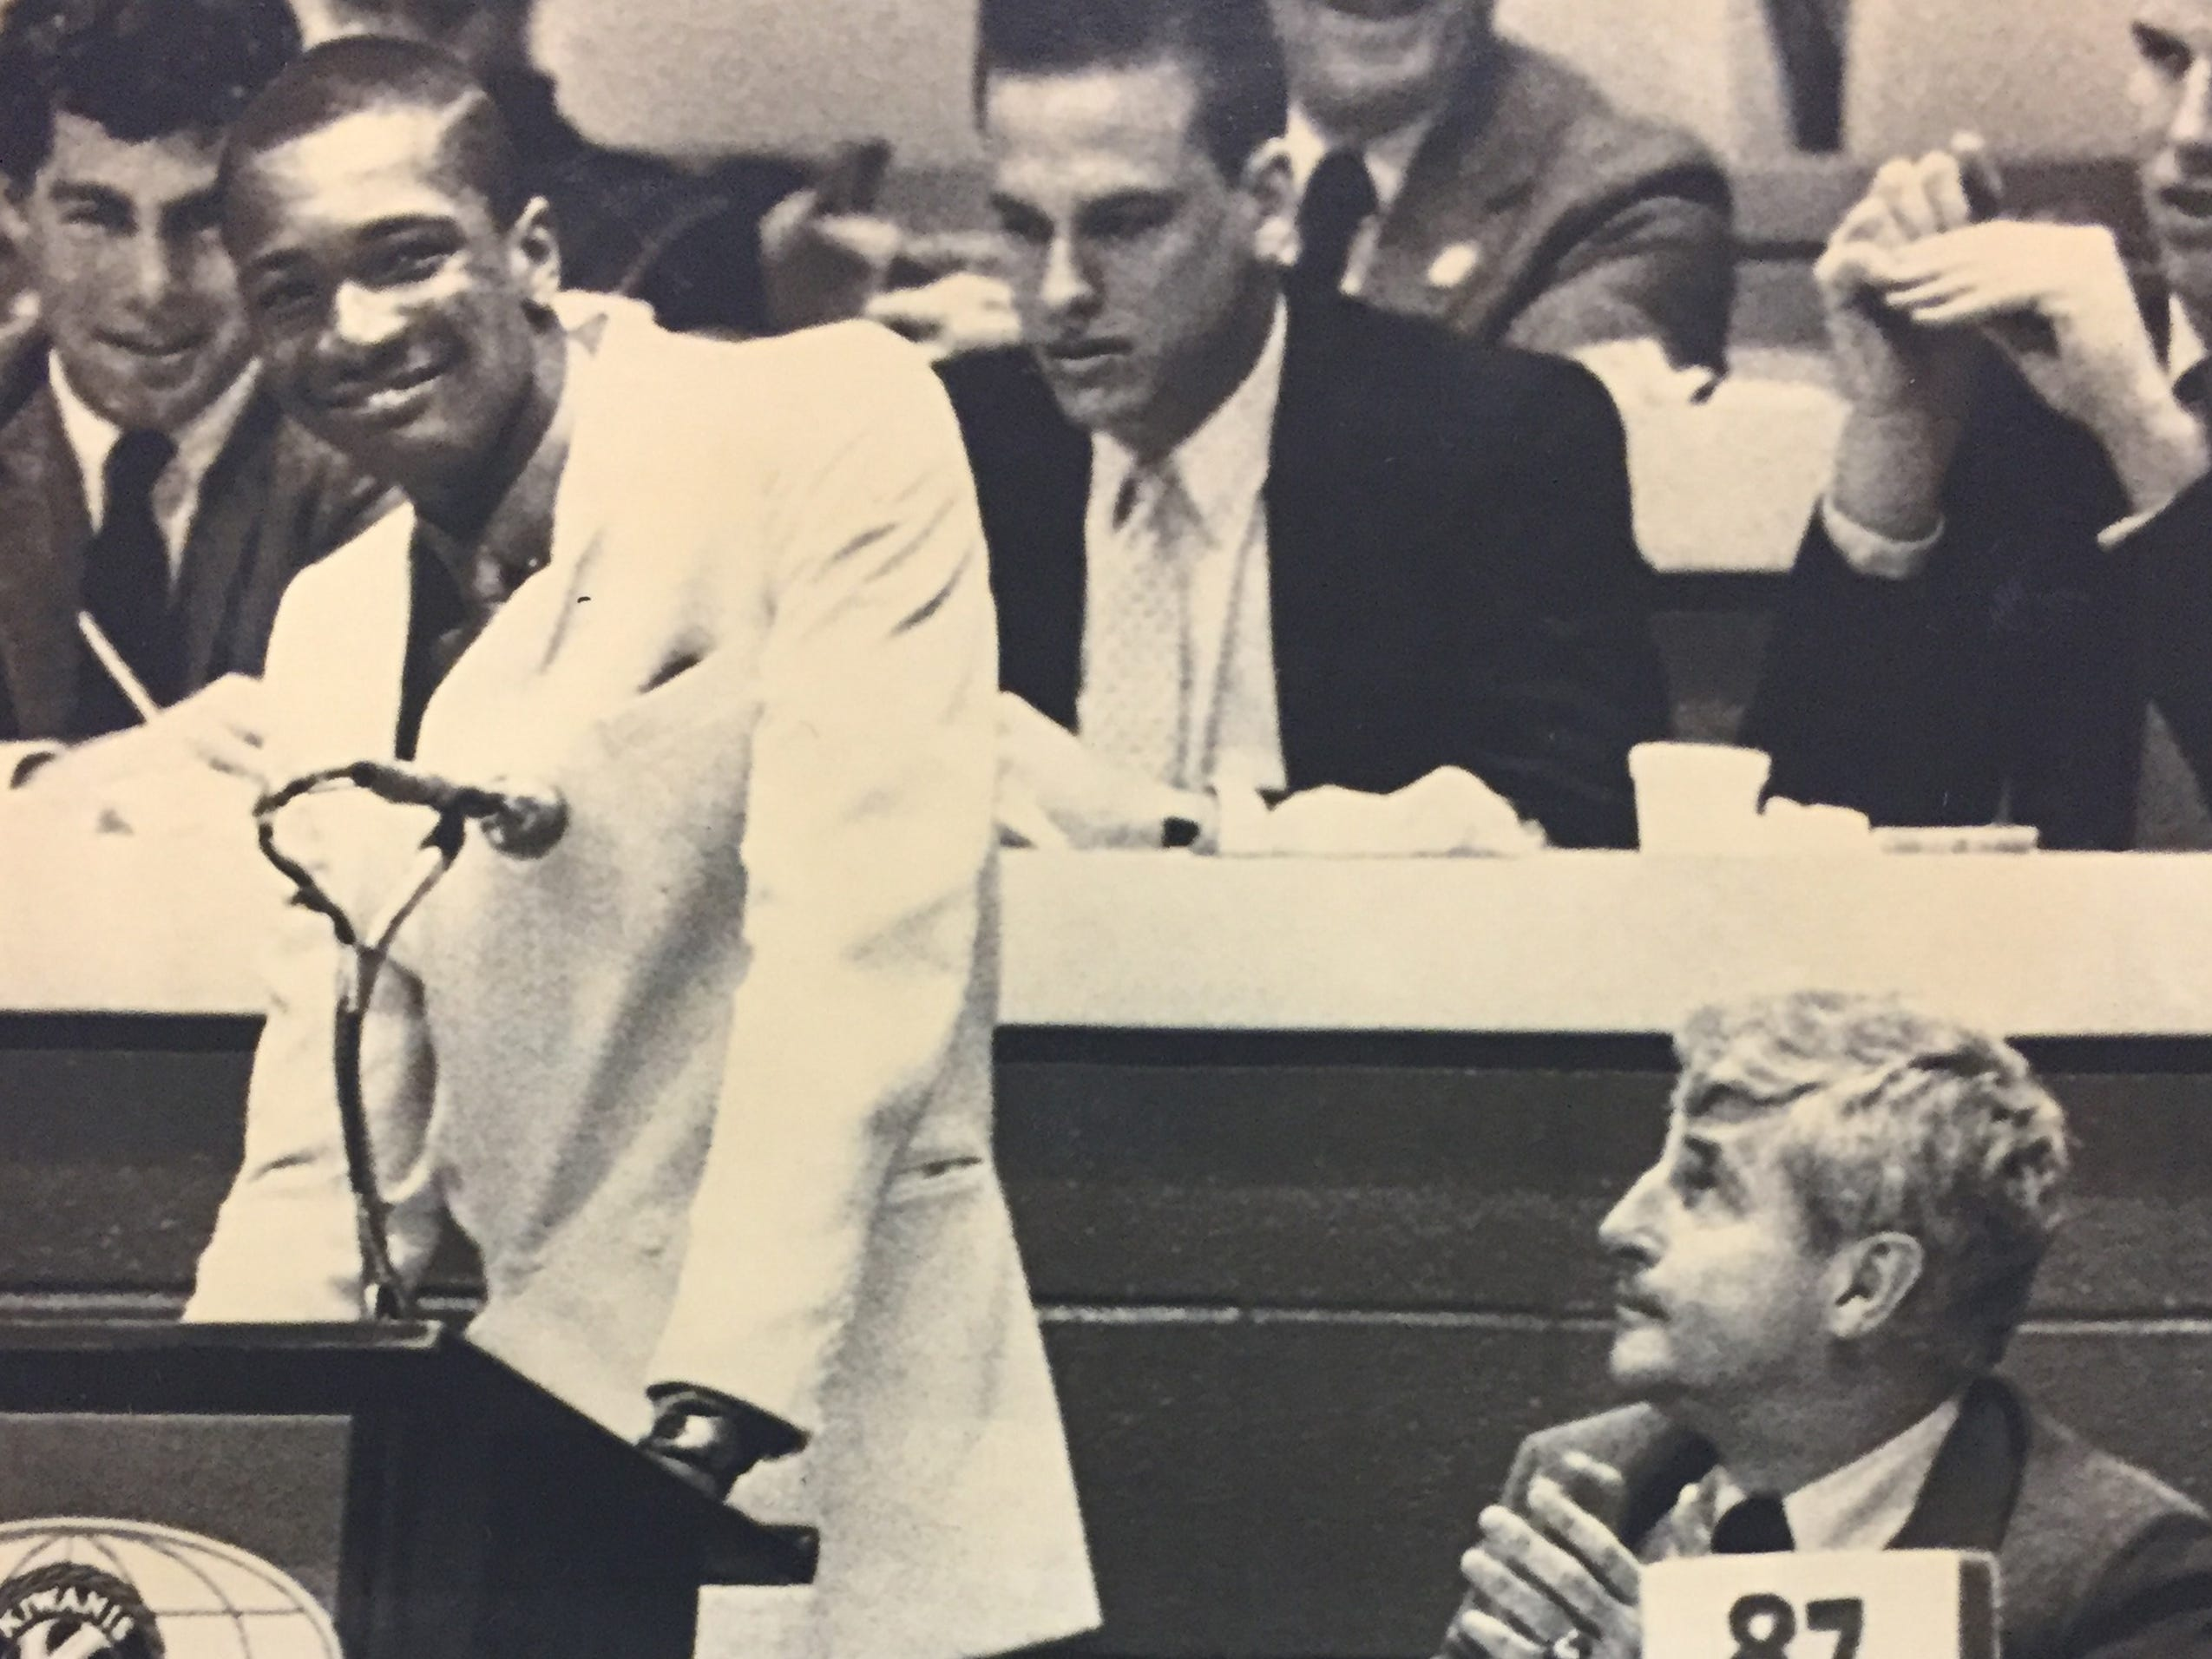 Rick Calloway is all smiles at the podium of the Kiwanis Club as Bob Knight looks on in April 1987.